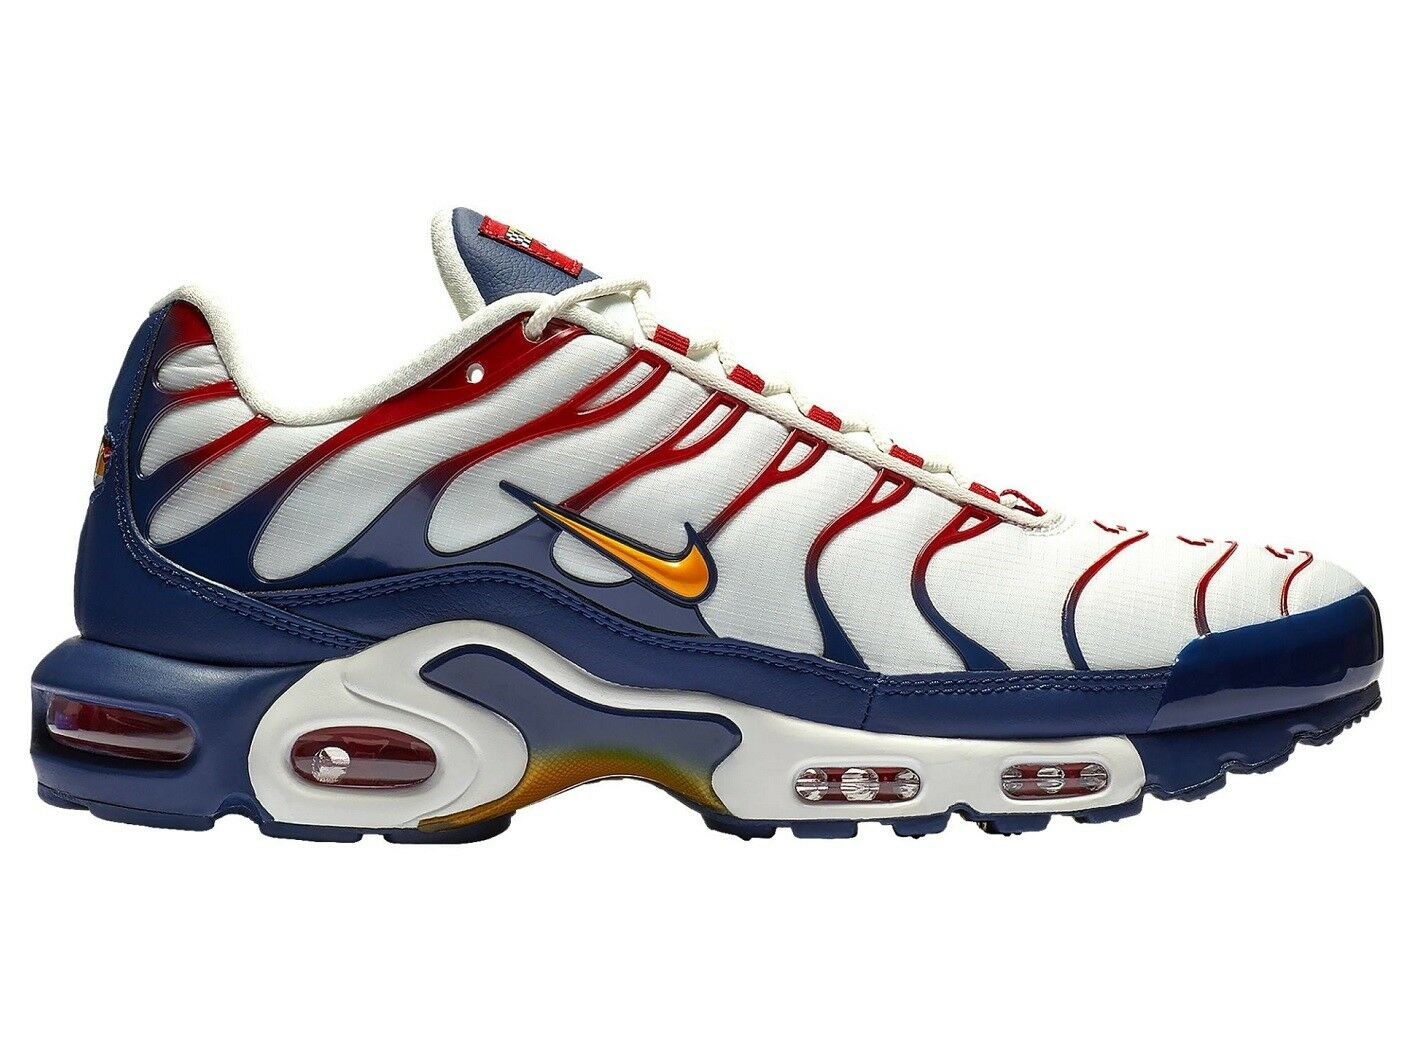 Nike Air Max Plus Nautical Pack Mens AR5400-100 Sail Navy Running Shoes Sz 11.5 Comfortable and good-looking